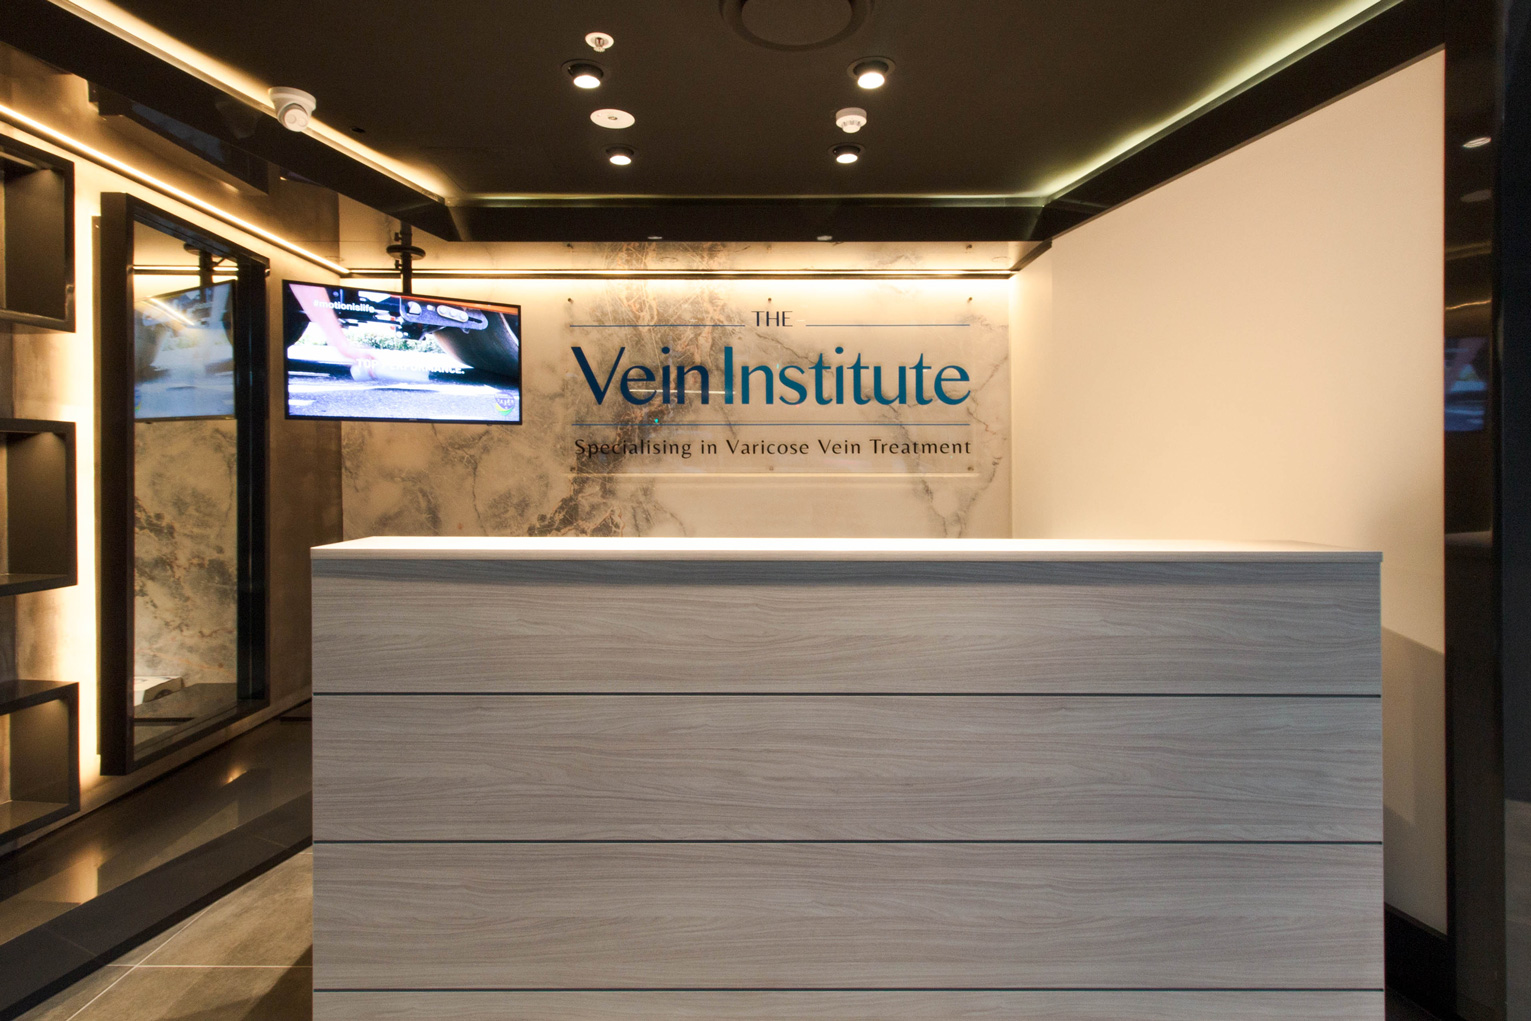 The Vein Institute